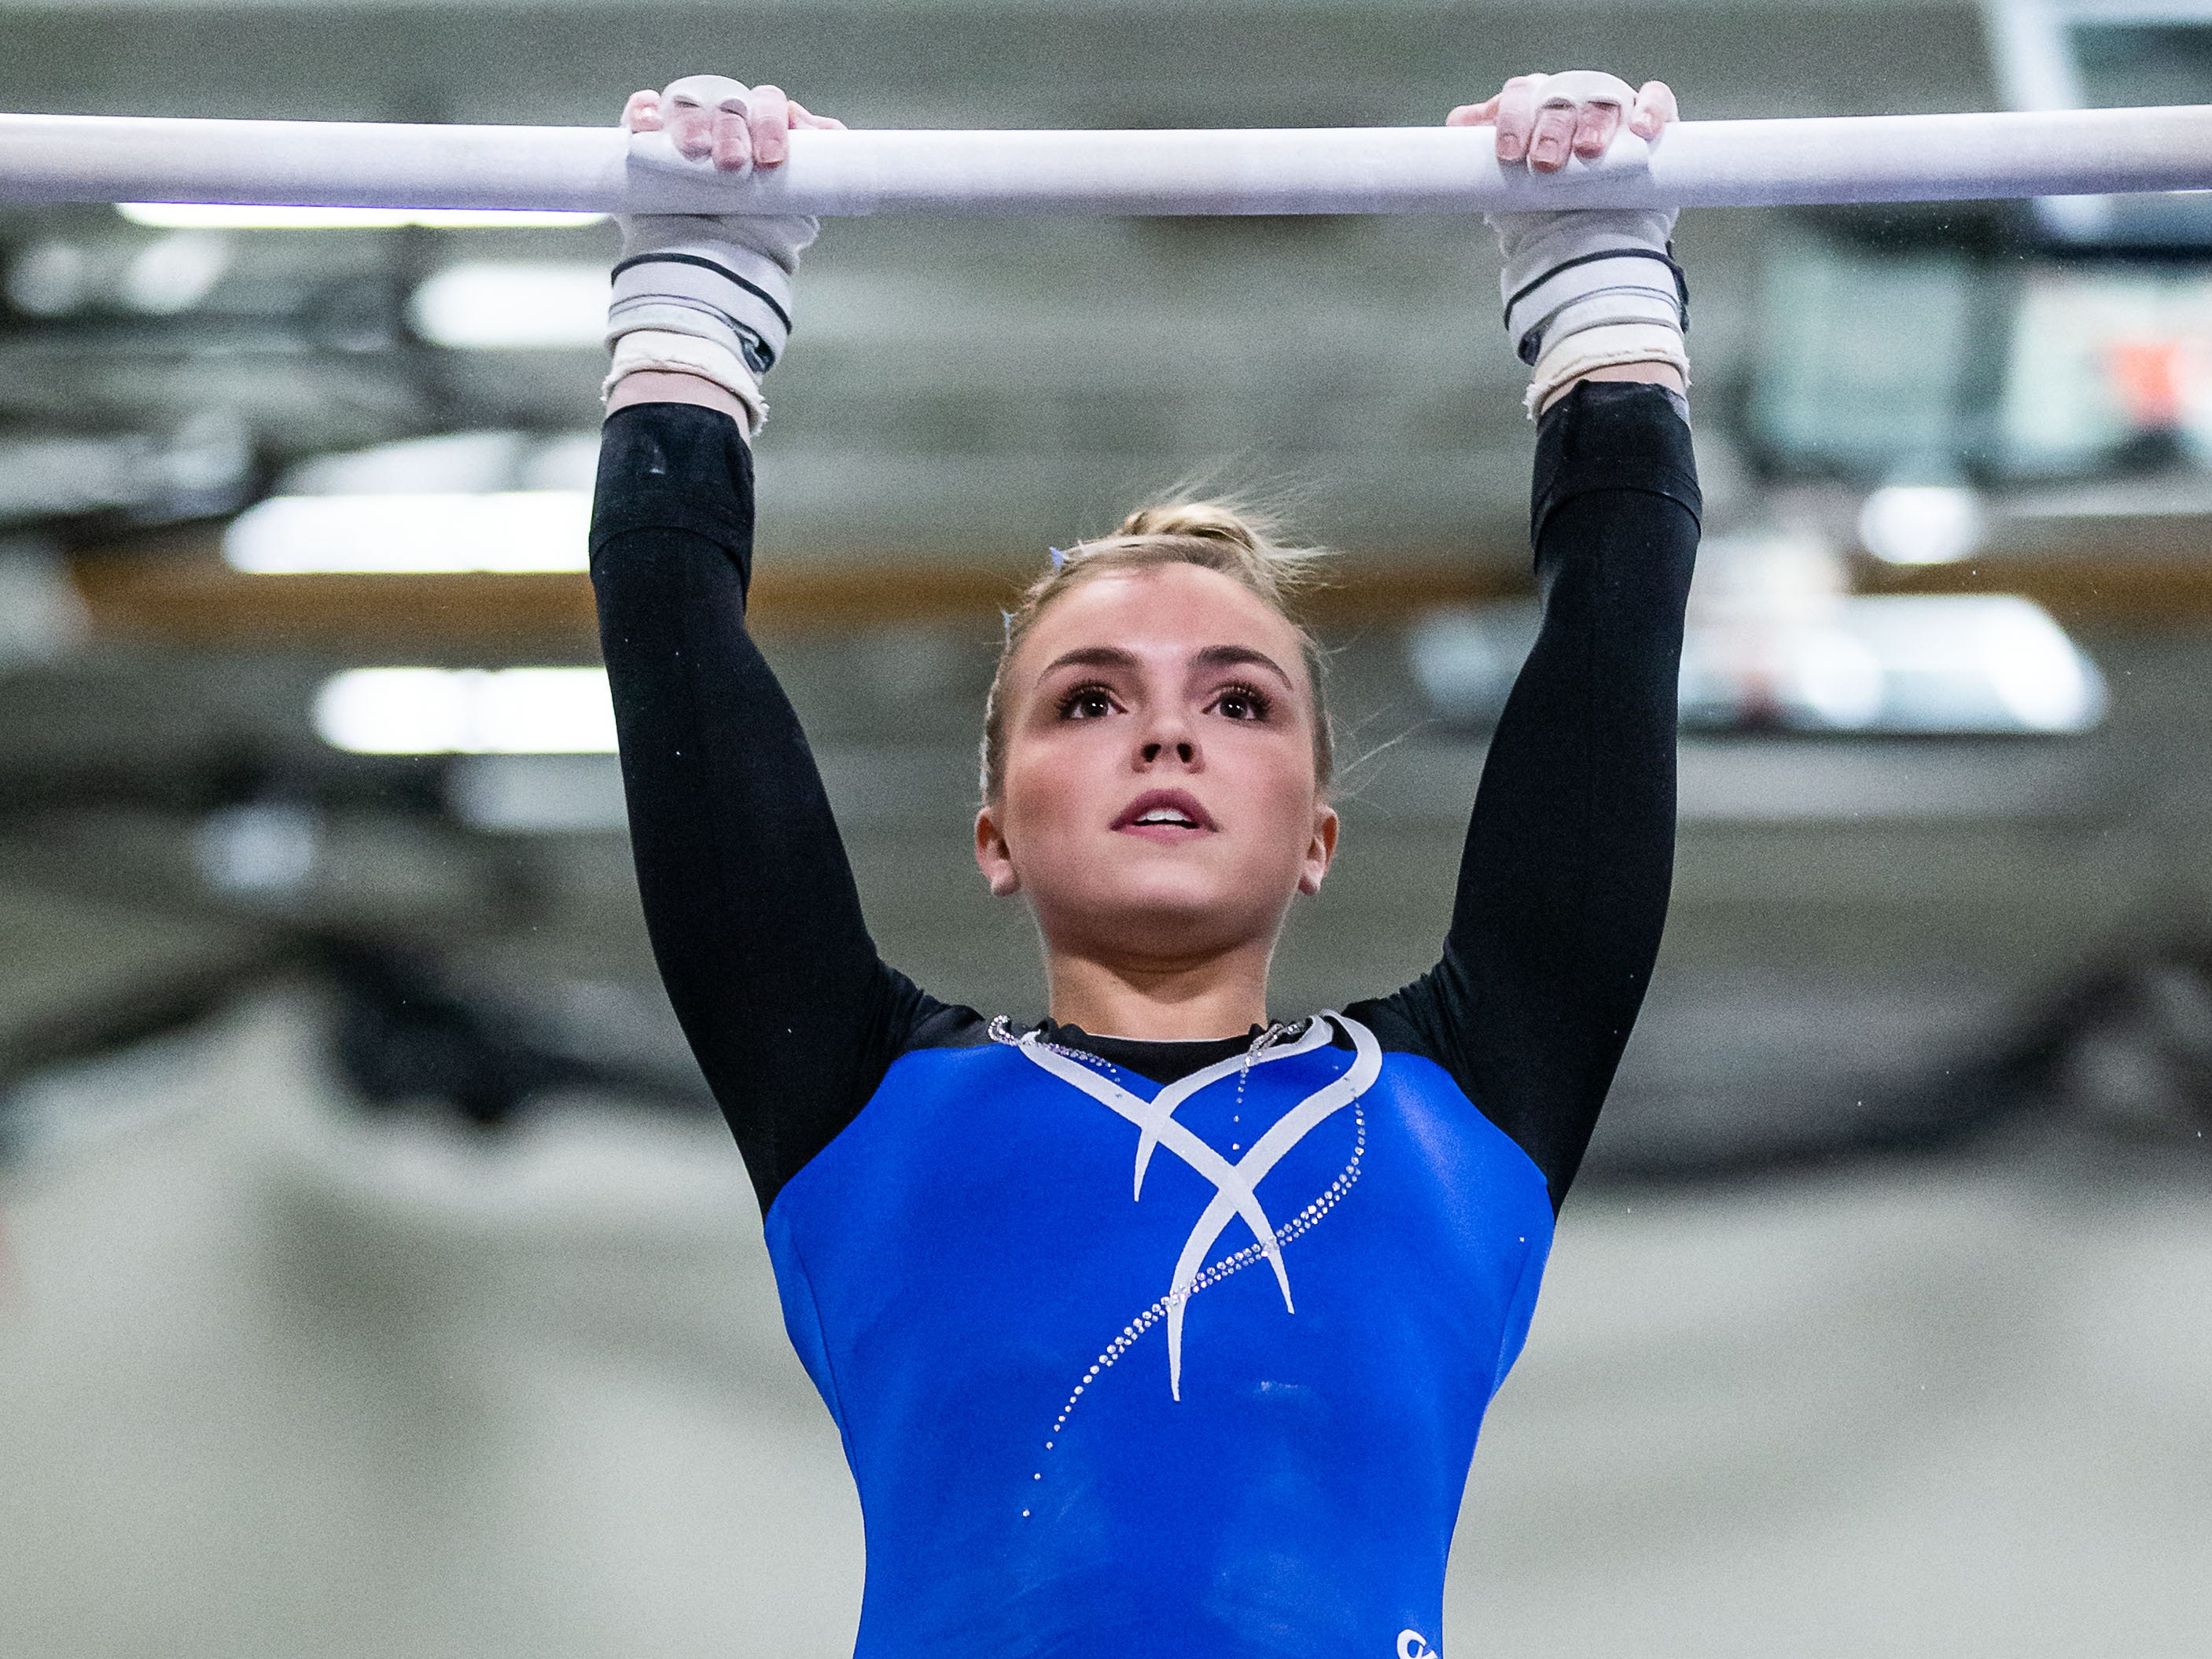 Nicolet gymnast Abbe Hansen competes on the bars during the meet at home against Whitefish Bay on Thursday, Jan. 3, 2019. Hansen placed third in the event with a score of 8.60.